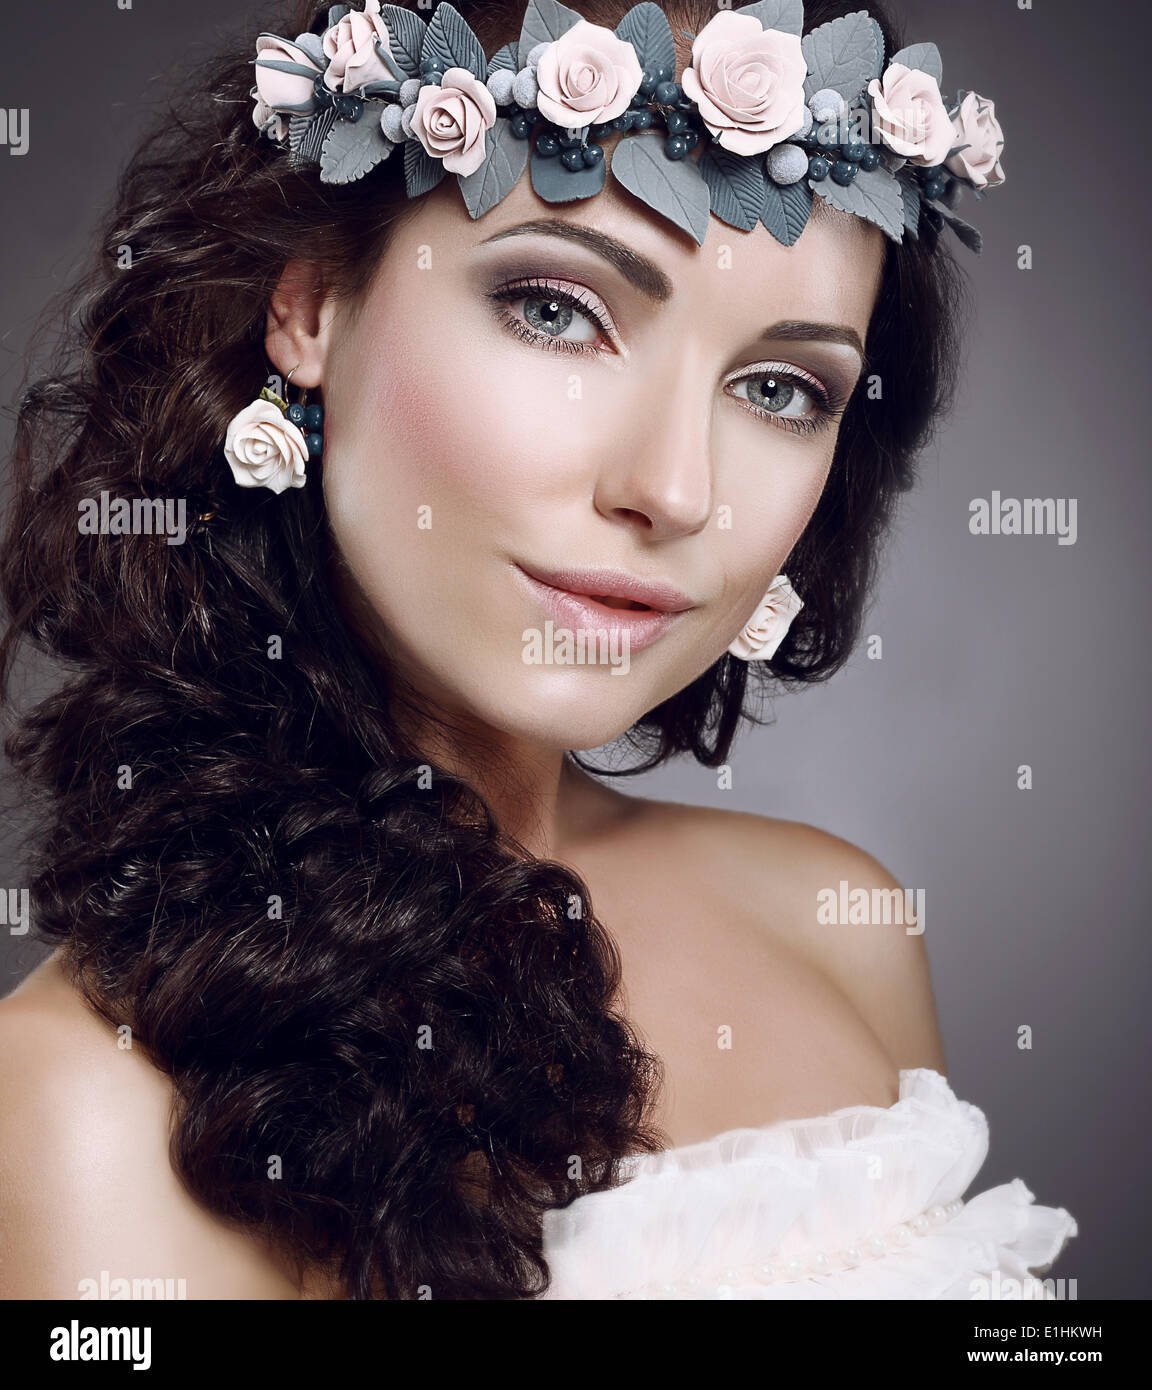 Attractiveness. Perfection. Fascinating Cutie wearing Wreath Of Flowers - Stock Image